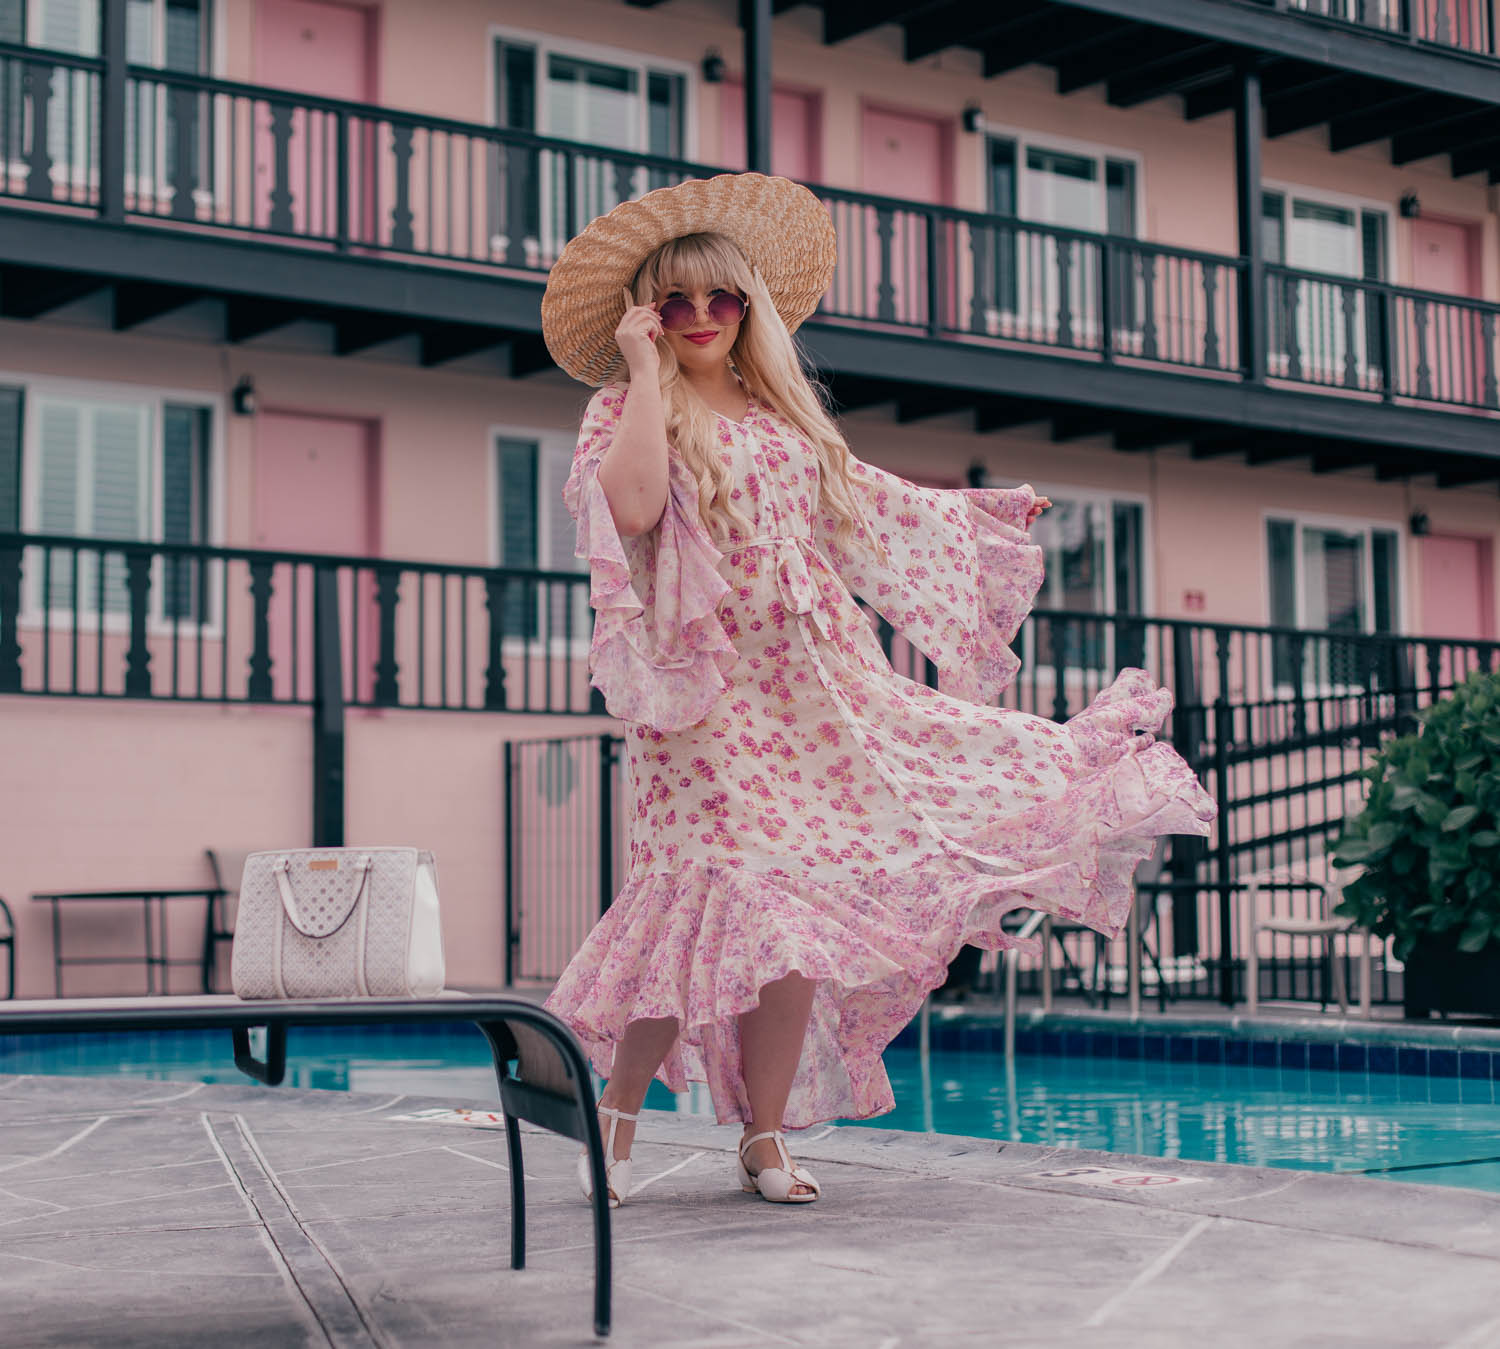 Feminine fashion blogger Elizabeth Hugen of Lizzie in Lace shares her favorite beach dress including a gorgeous floral Chicwish dress for summer